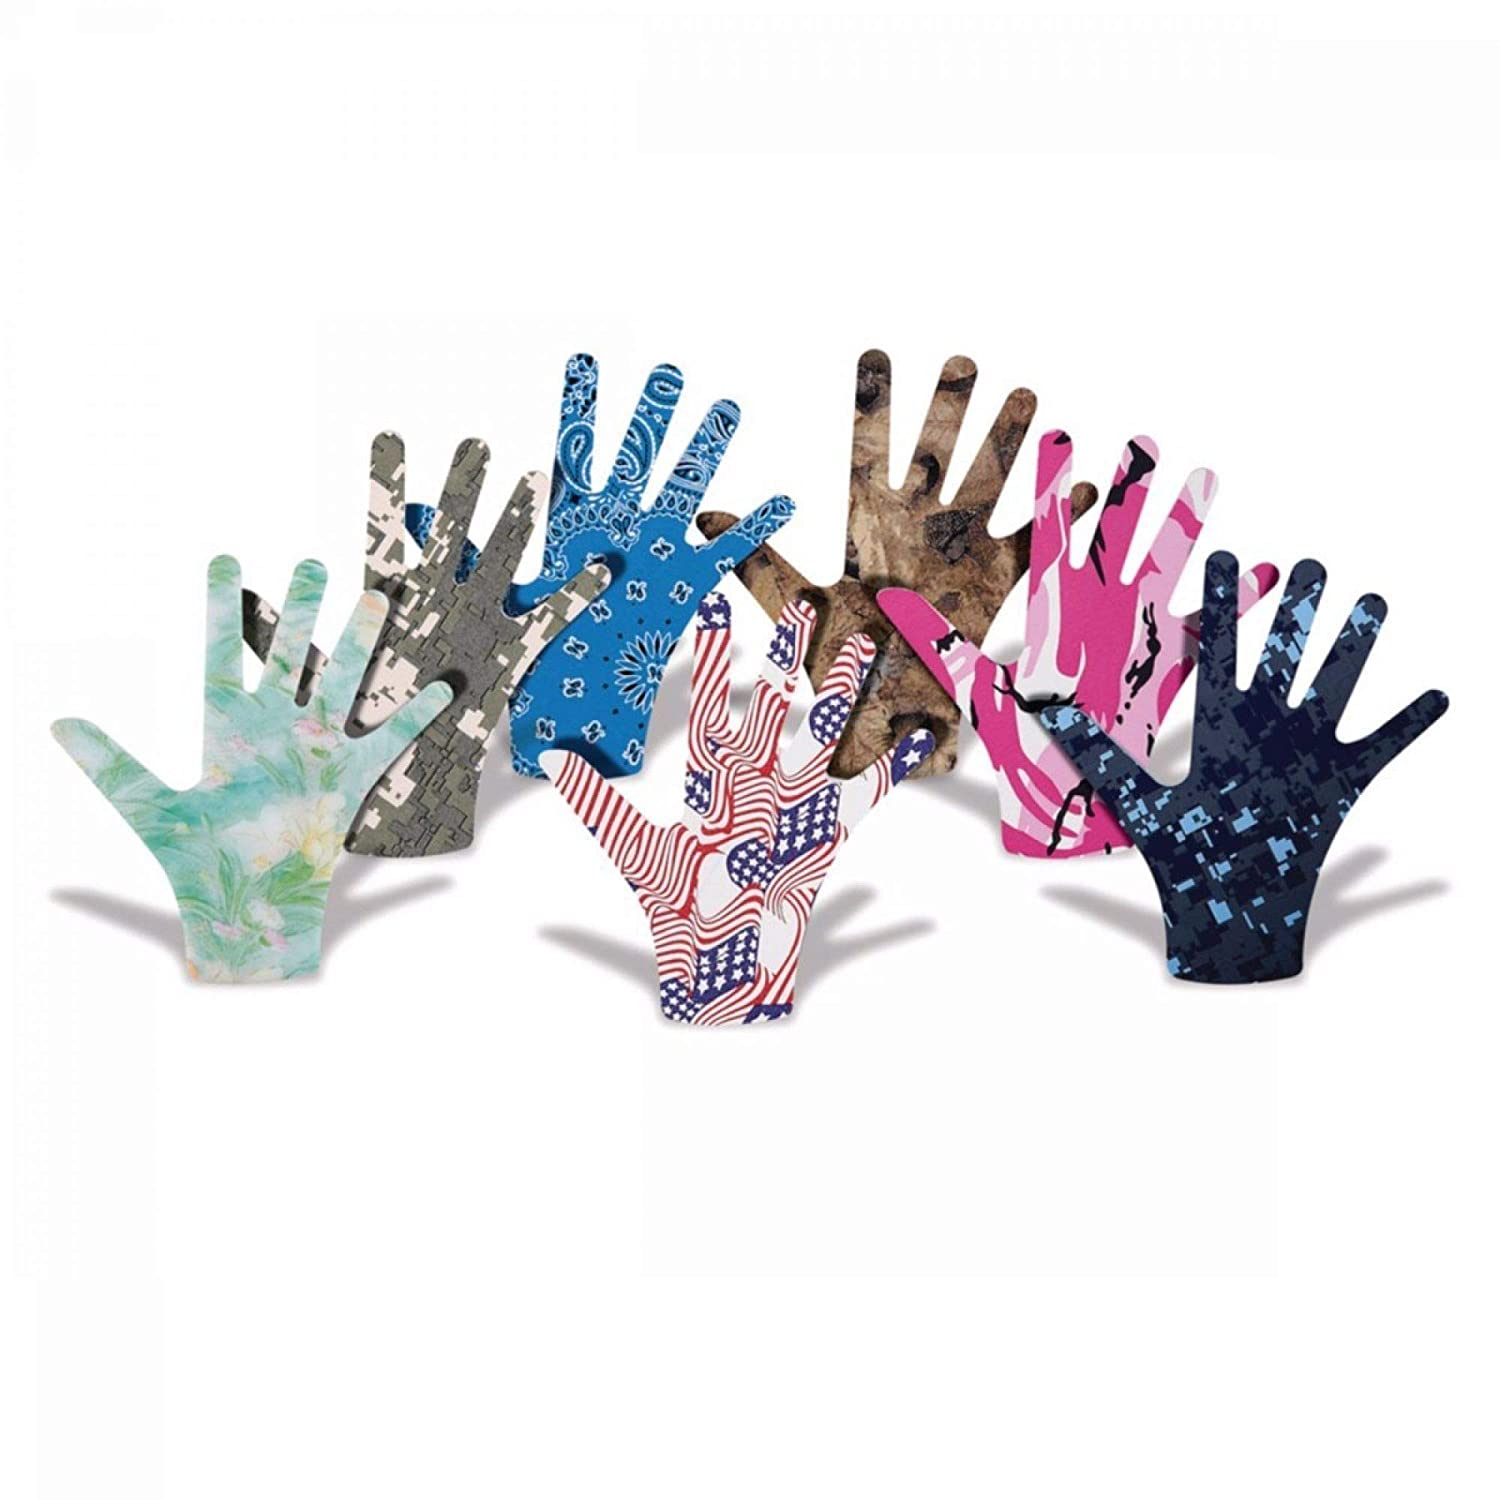 Rolyan Imprints Bandana Mini Cock-Up, Low-Heat Splint Material, Thermoplastic Splint for Injuries, Immobilizes Injuries, Orthotic Protection, Professional & Clinical Use